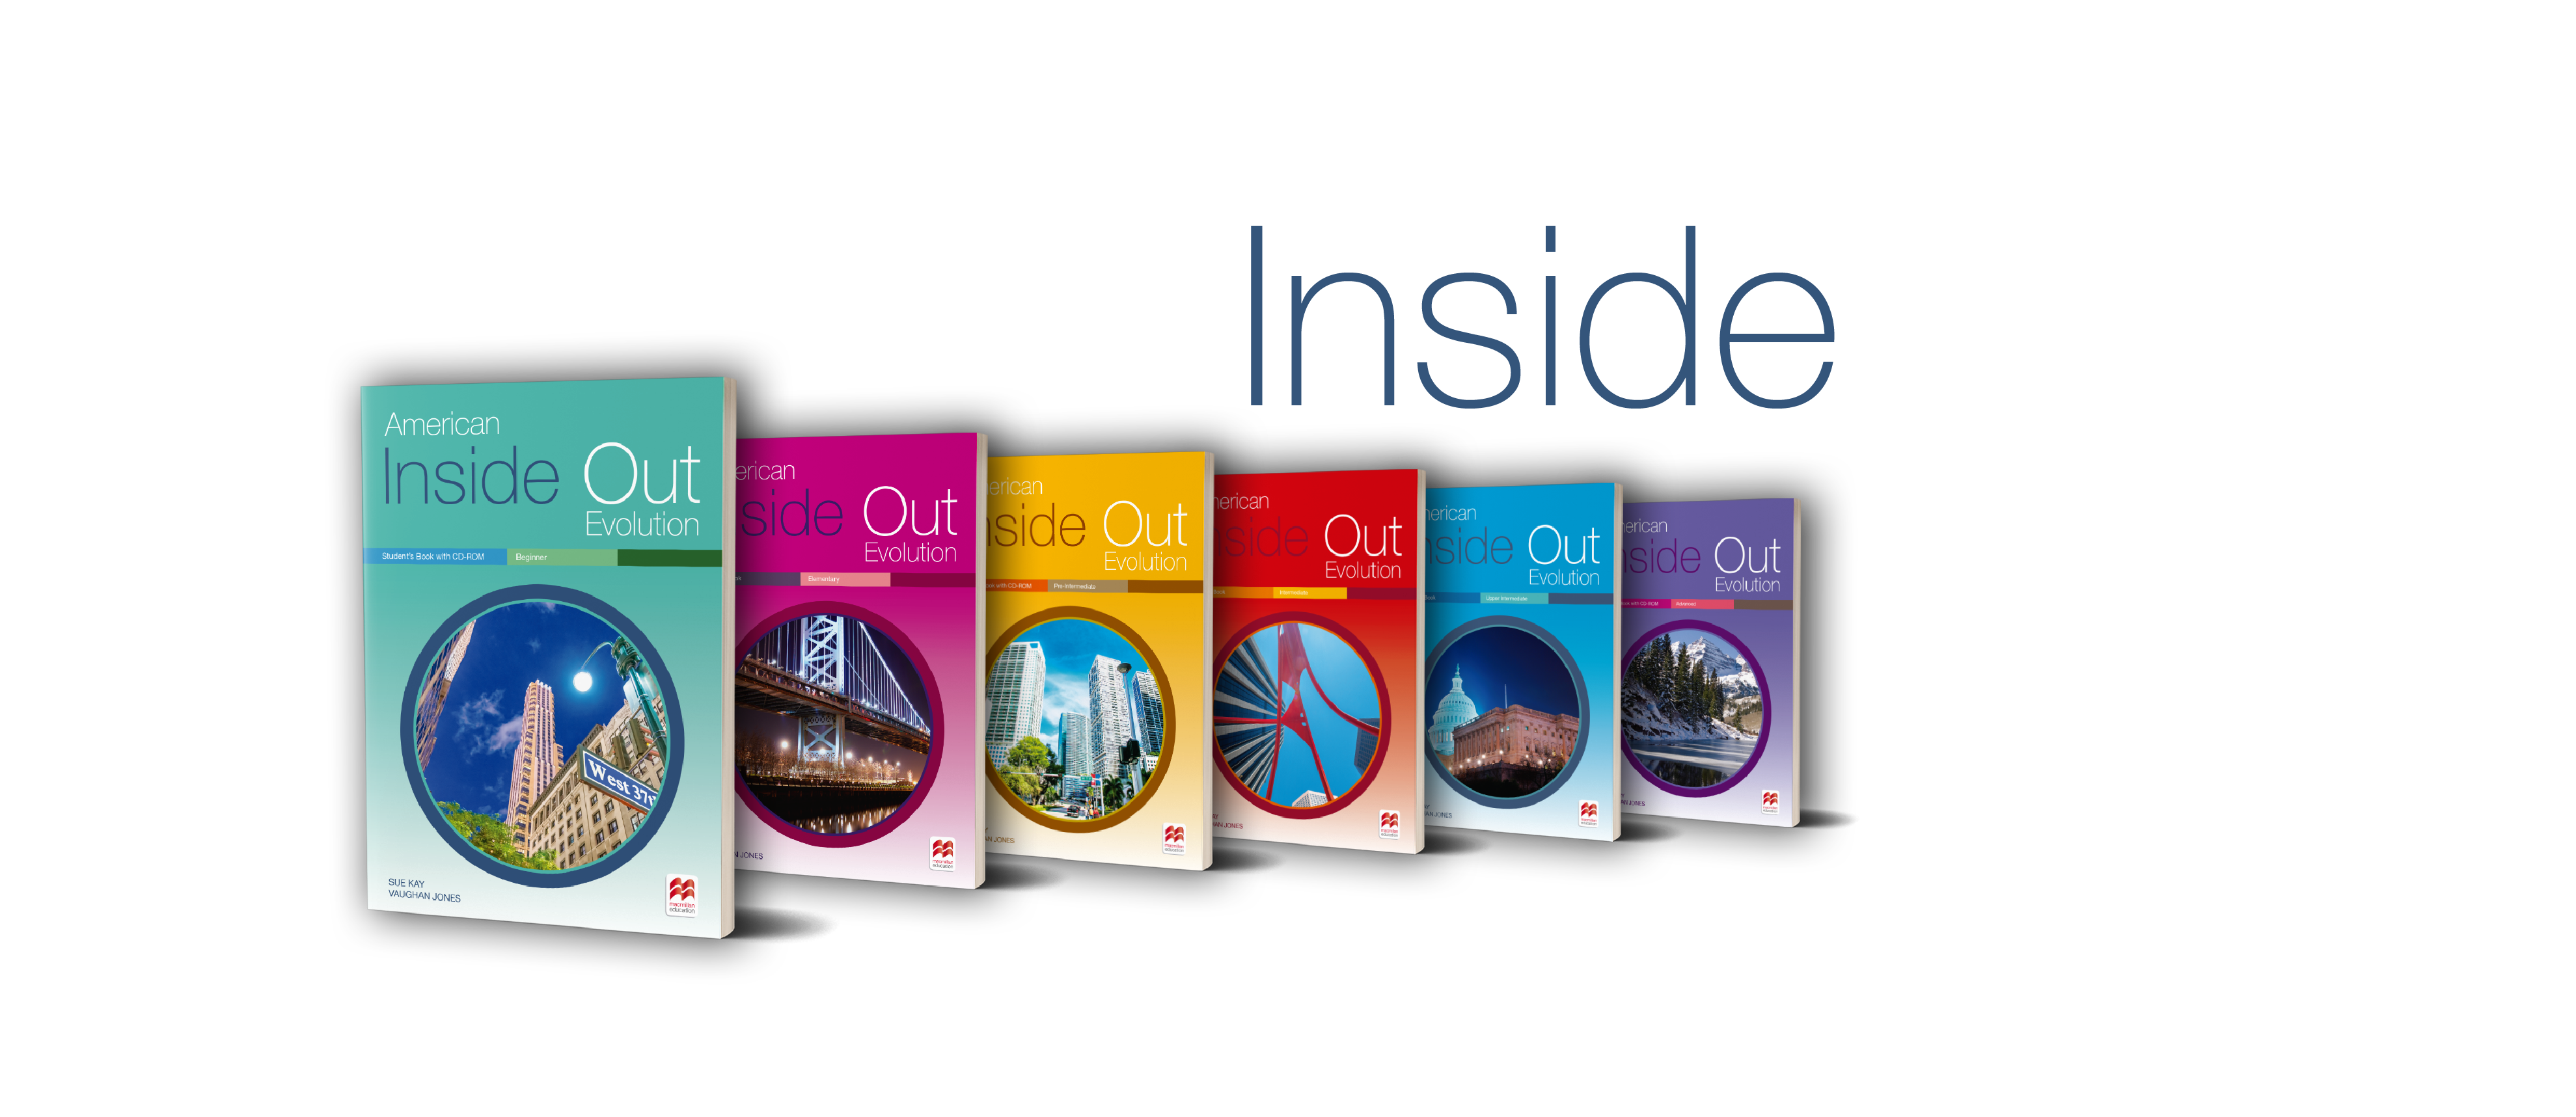 Macmillan American Inside Out Evolution